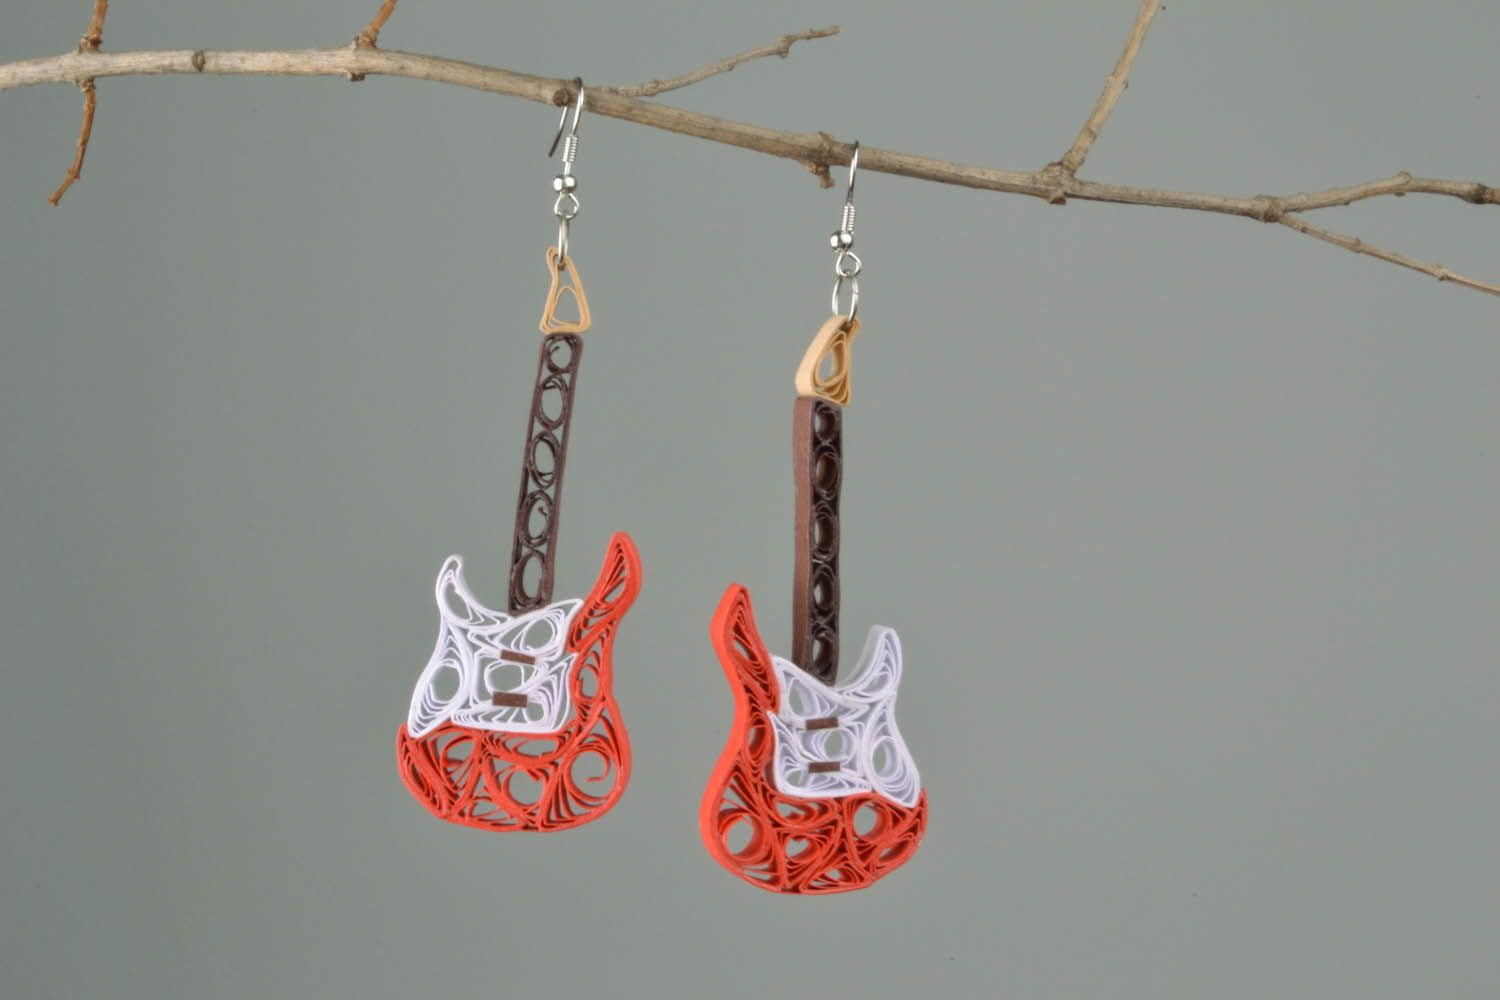 Paper earrings in the shape of guitars photo 1